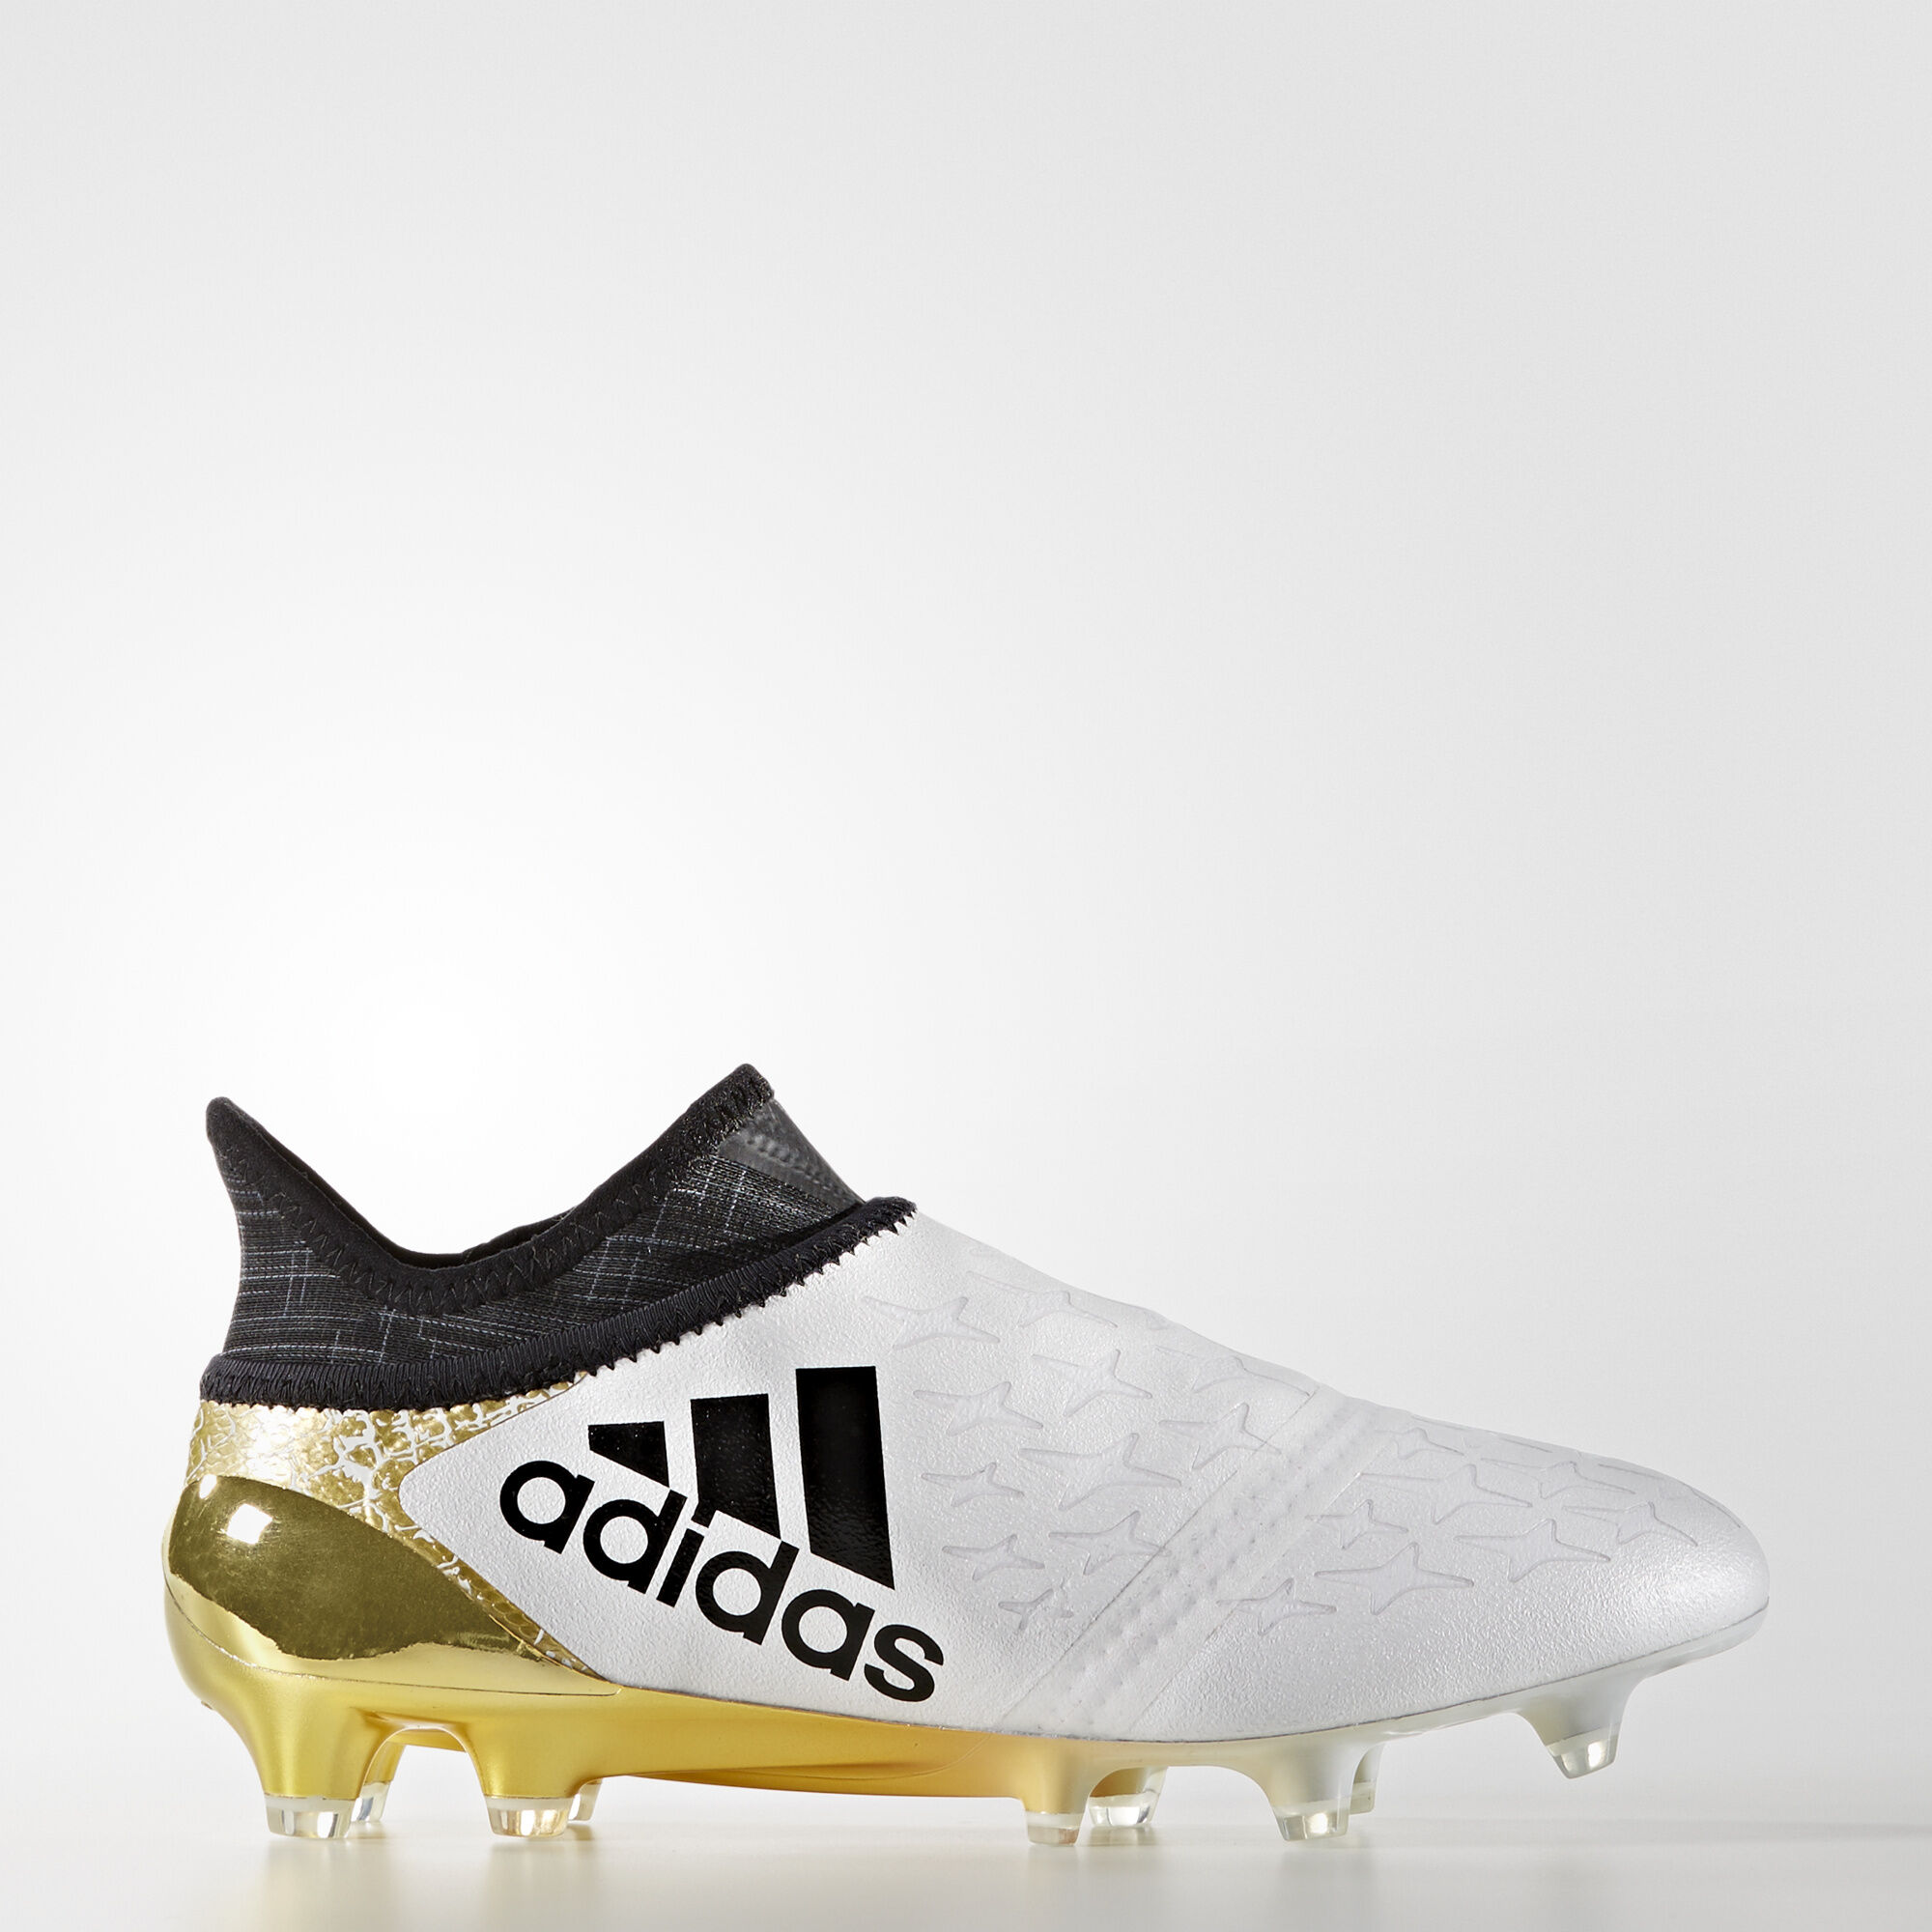 adidas x 16 purechaos firm ground cleats white adidas us. Black Bedroom Furniture Sets. Home Design Ideas